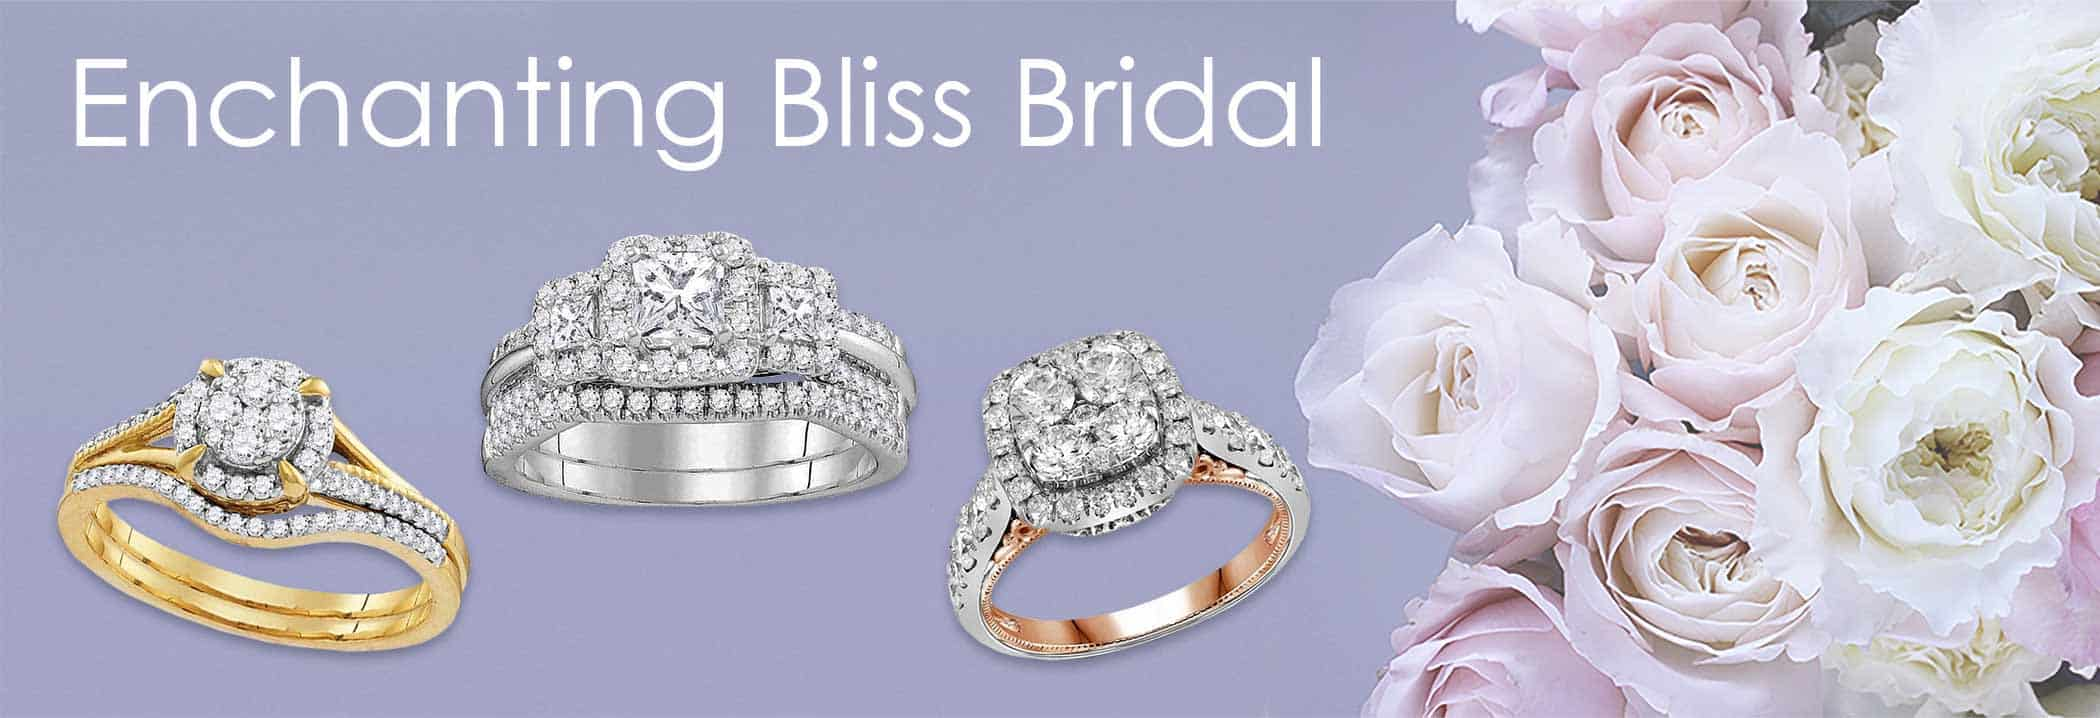 Saslow's & Henebry's Jewelers Enchanting Bliss